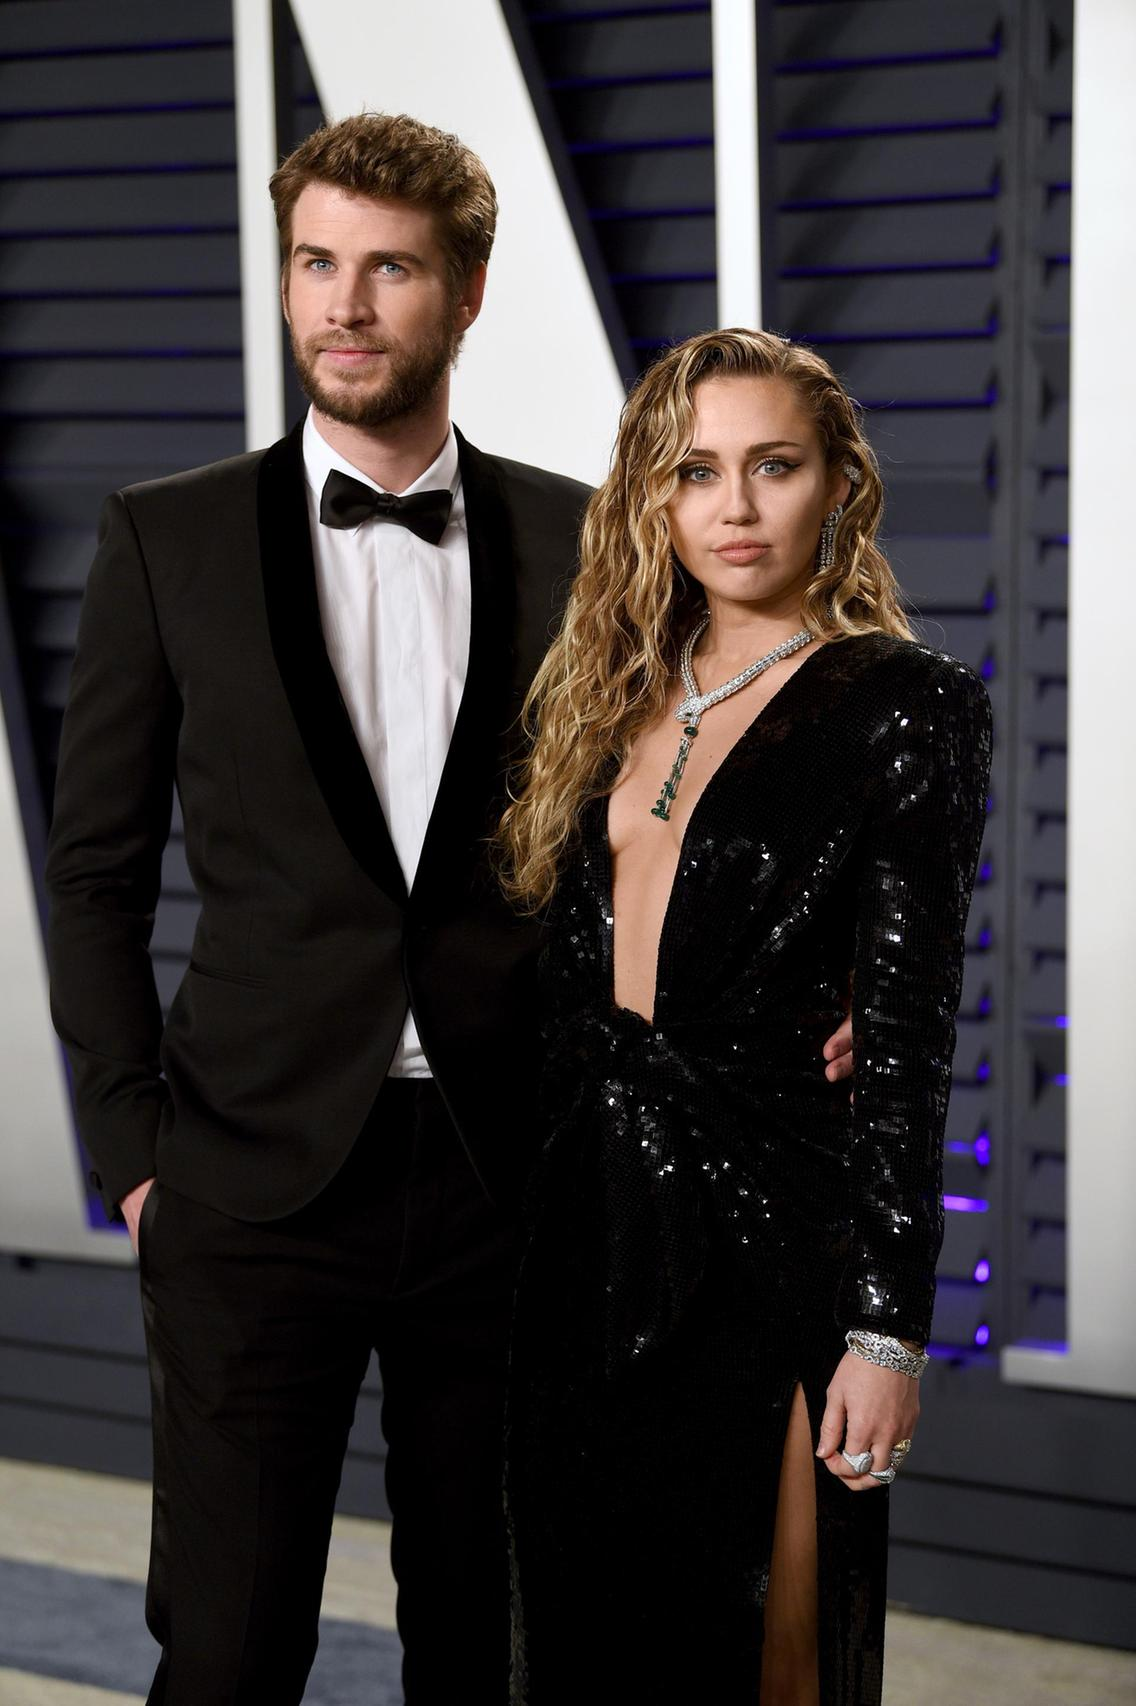 Vanity Fair Oscars After Party 2019